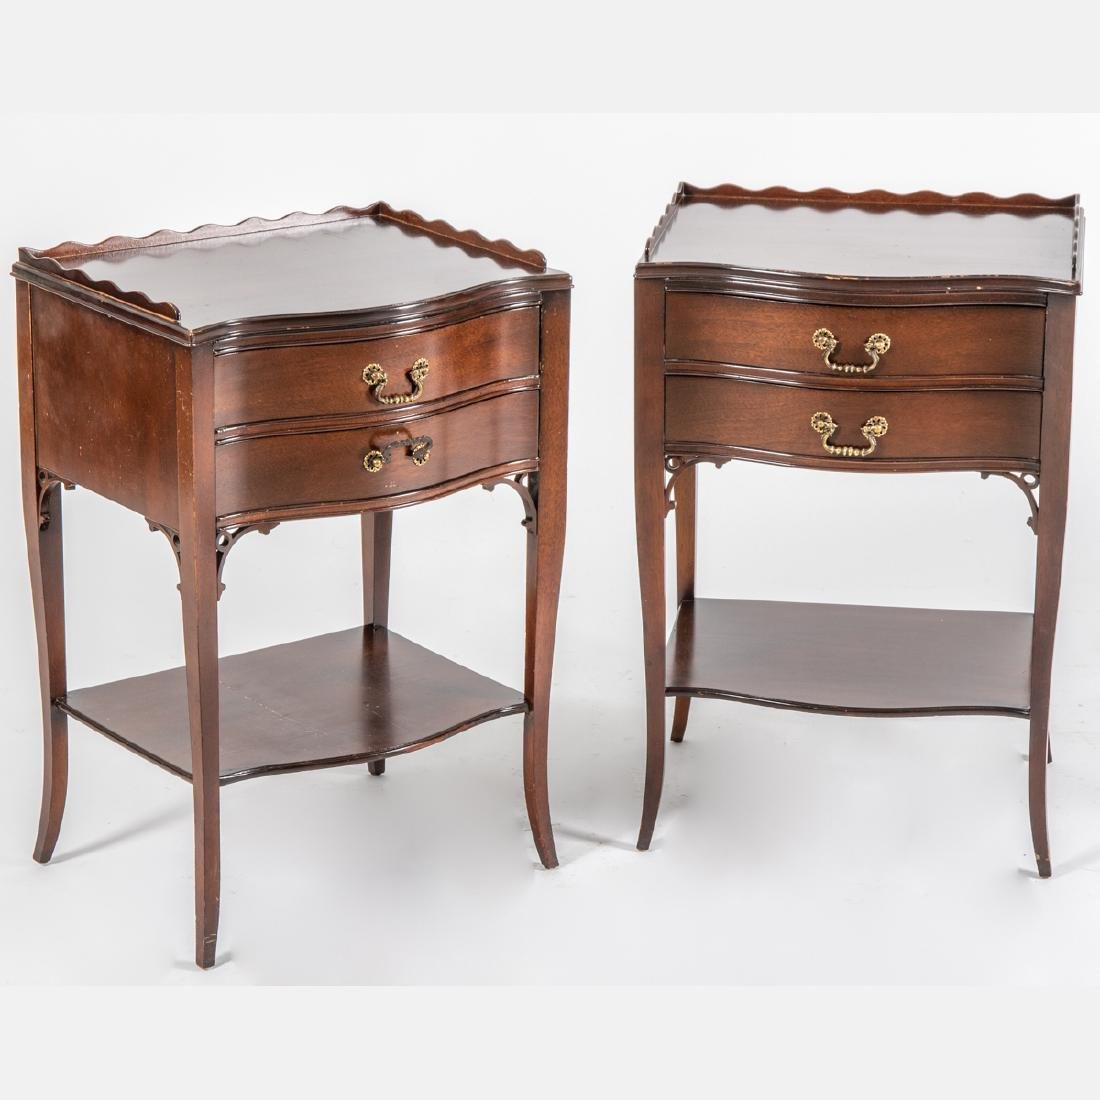 A Pair of Georgian Style Mahogany Nightstands, 20th